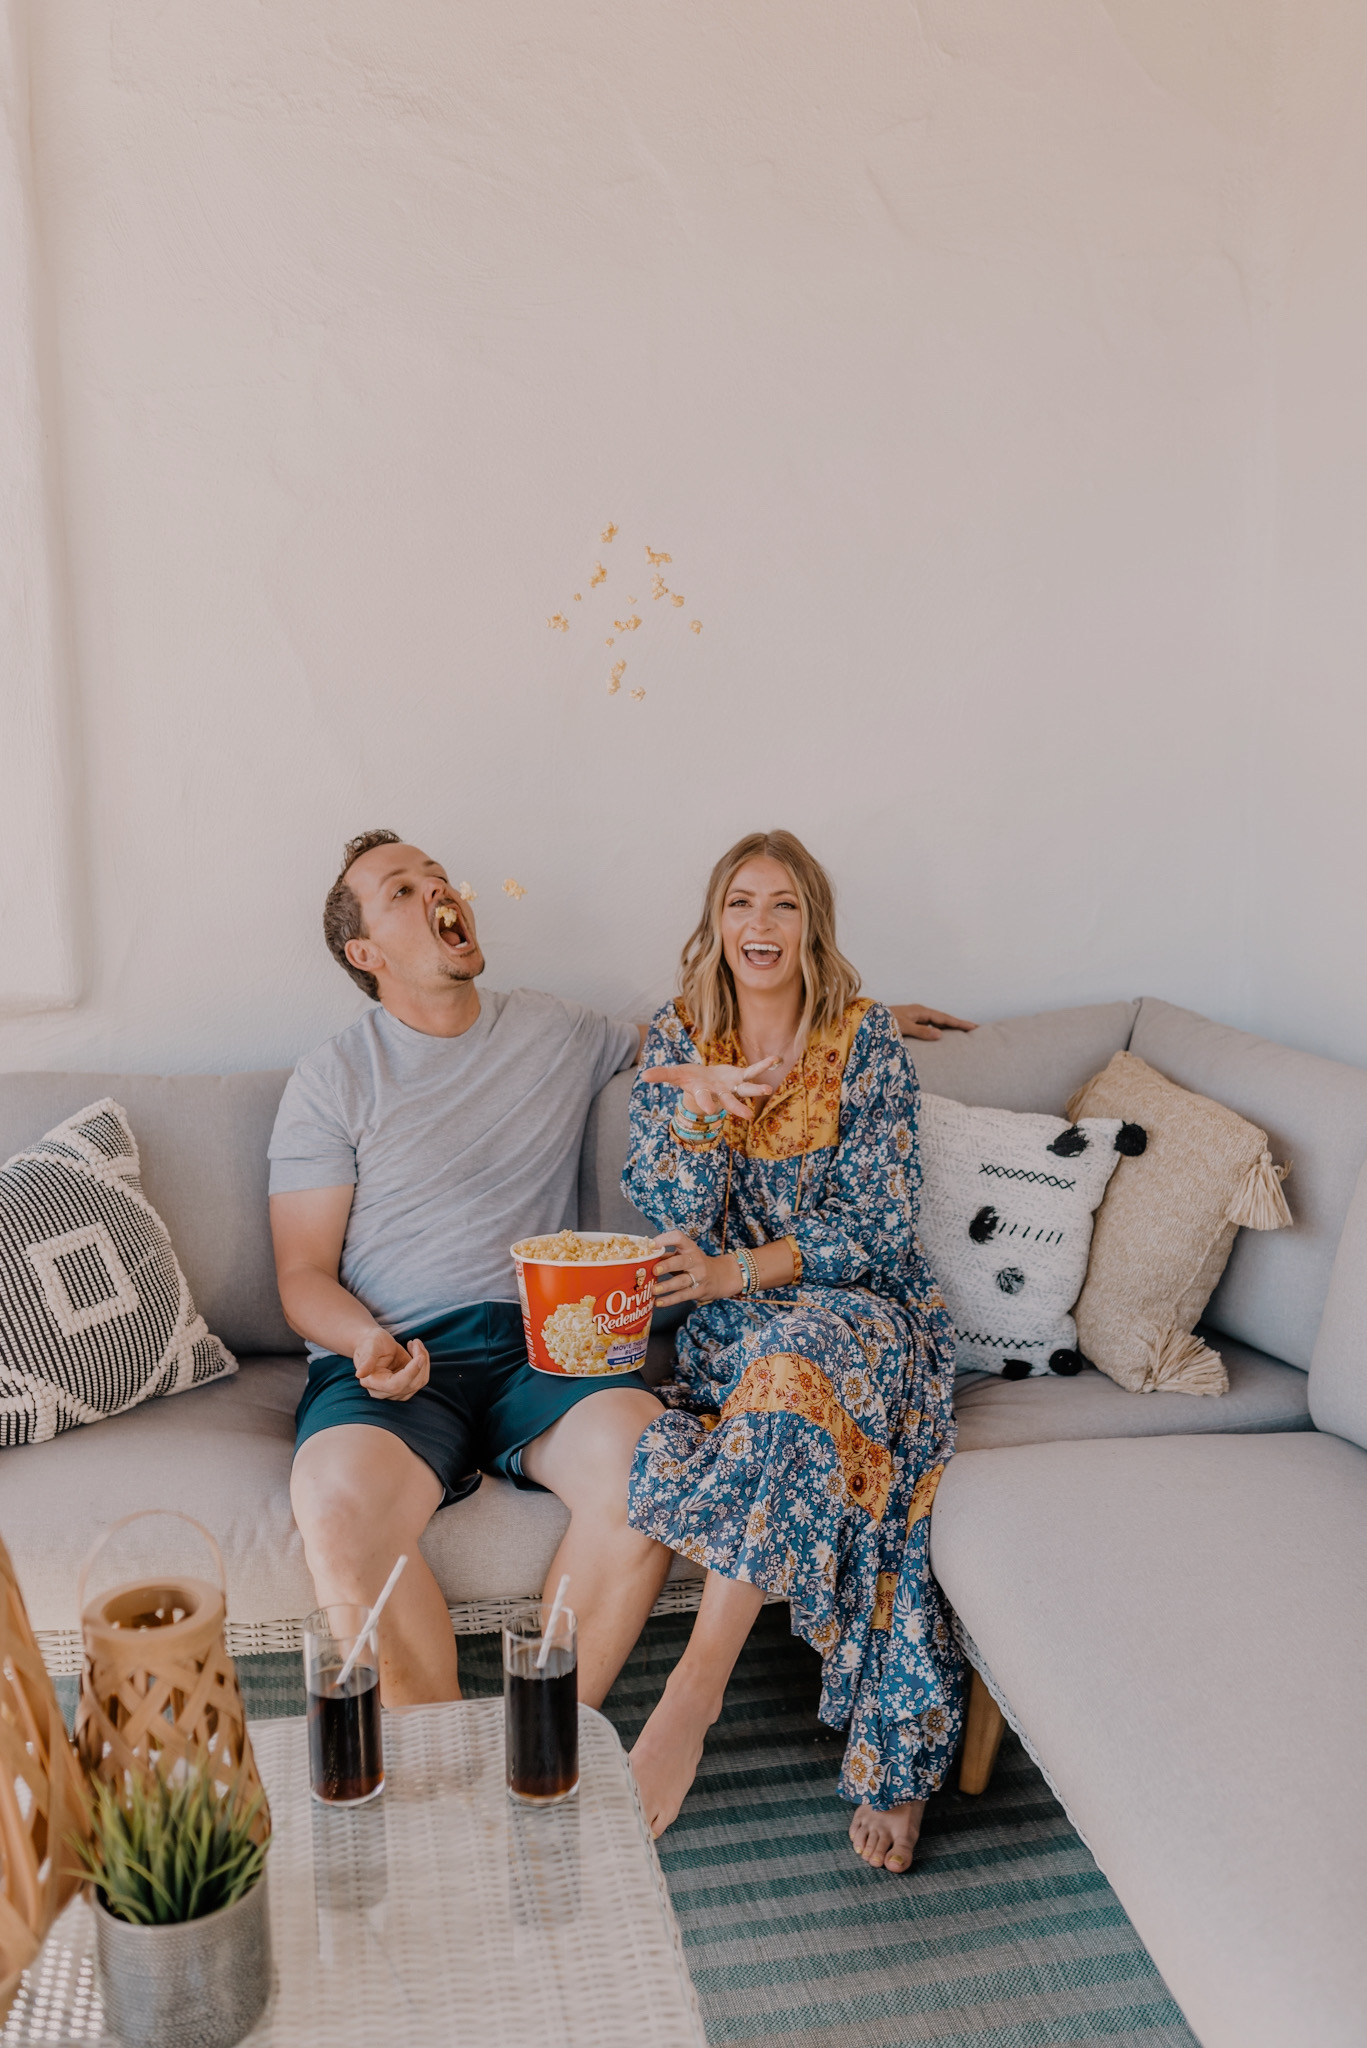 Orville Redenbacher's Popcorn by popular San Diego lifestyle blog, Navy Grace: image of a husband and wife sitting on their patio and eating some Orville Redenbacher's popcorn.